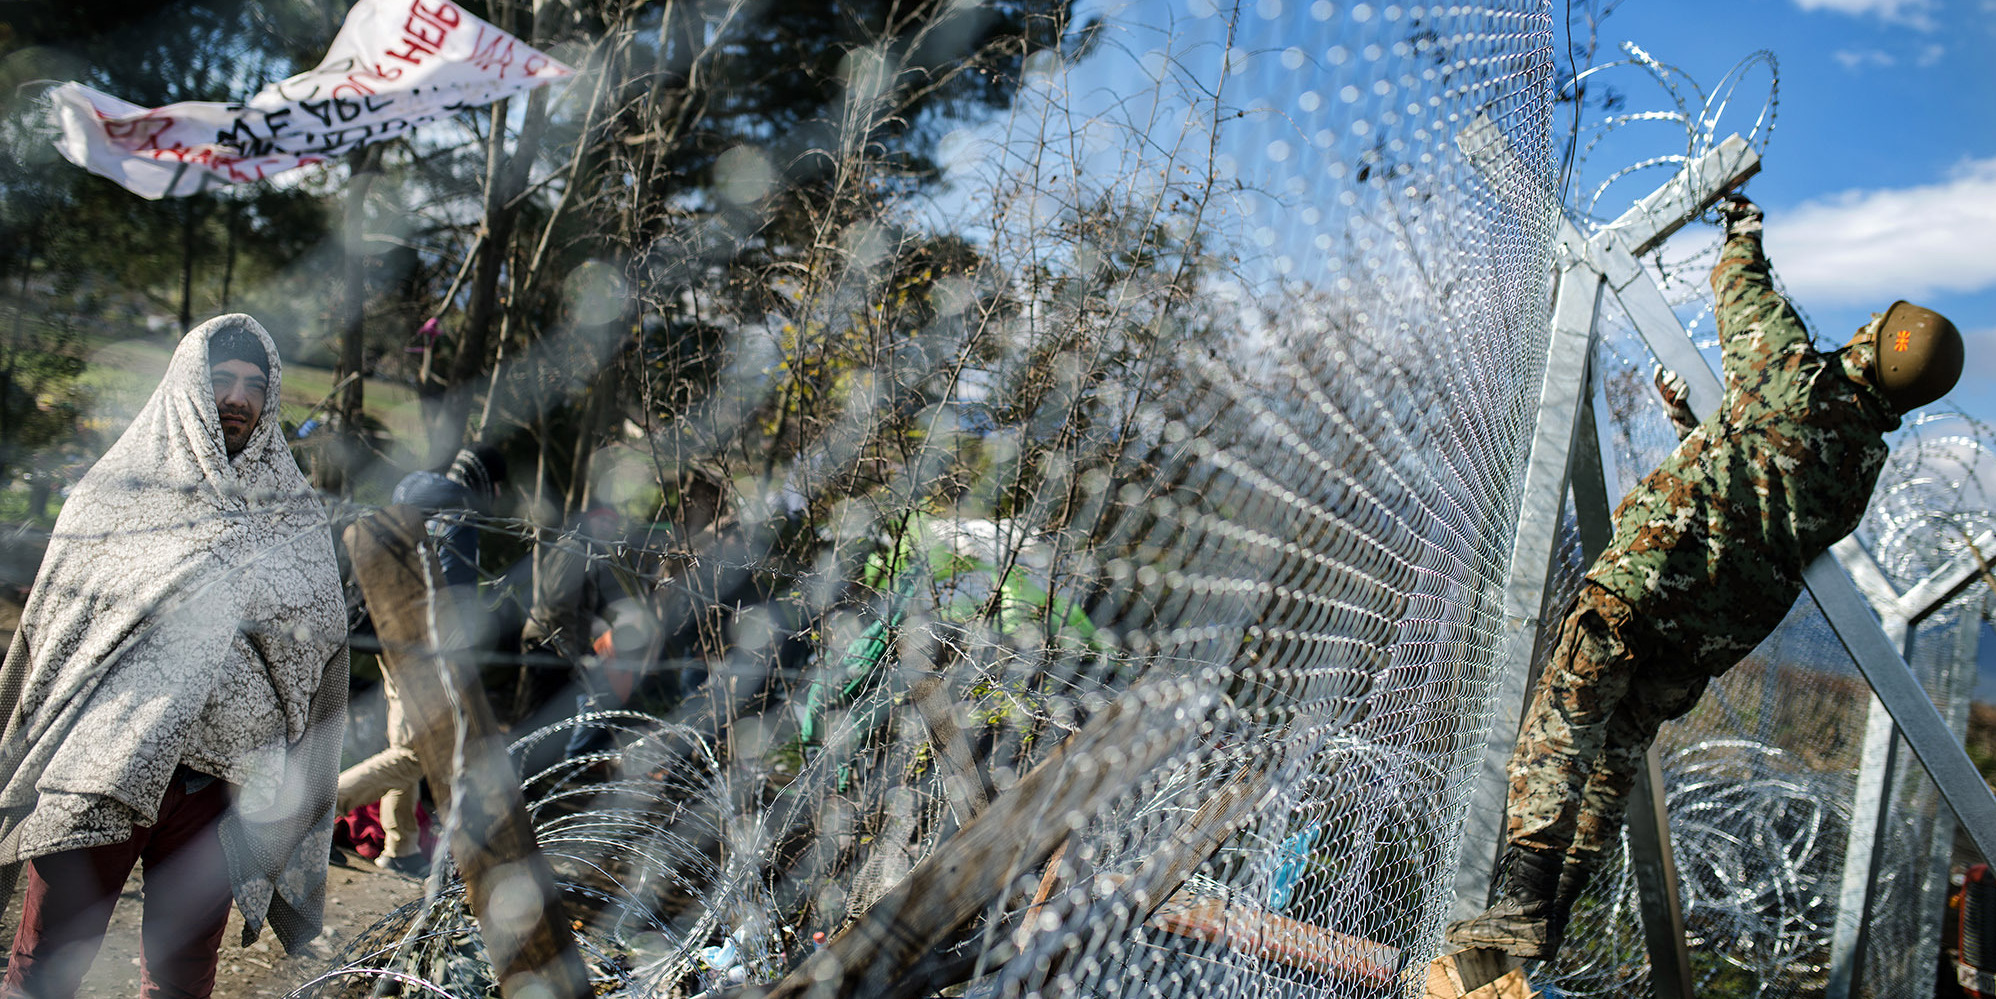 A migrant demonstrate looks on from behind a fence as he wait to cross the Greek-Macedonian border near Gevgelija on November 29, 2015.A group of migrants trying to enter Macedonia pelted the police with stones on November 28, injuring several officers as the small Balkan country became the latest to build a border fence aimed at checking the flow of newcomers. AFP PHOTO / ROBERT ATANASOVSKI / AFP / ROBERT ATANASOVSKI